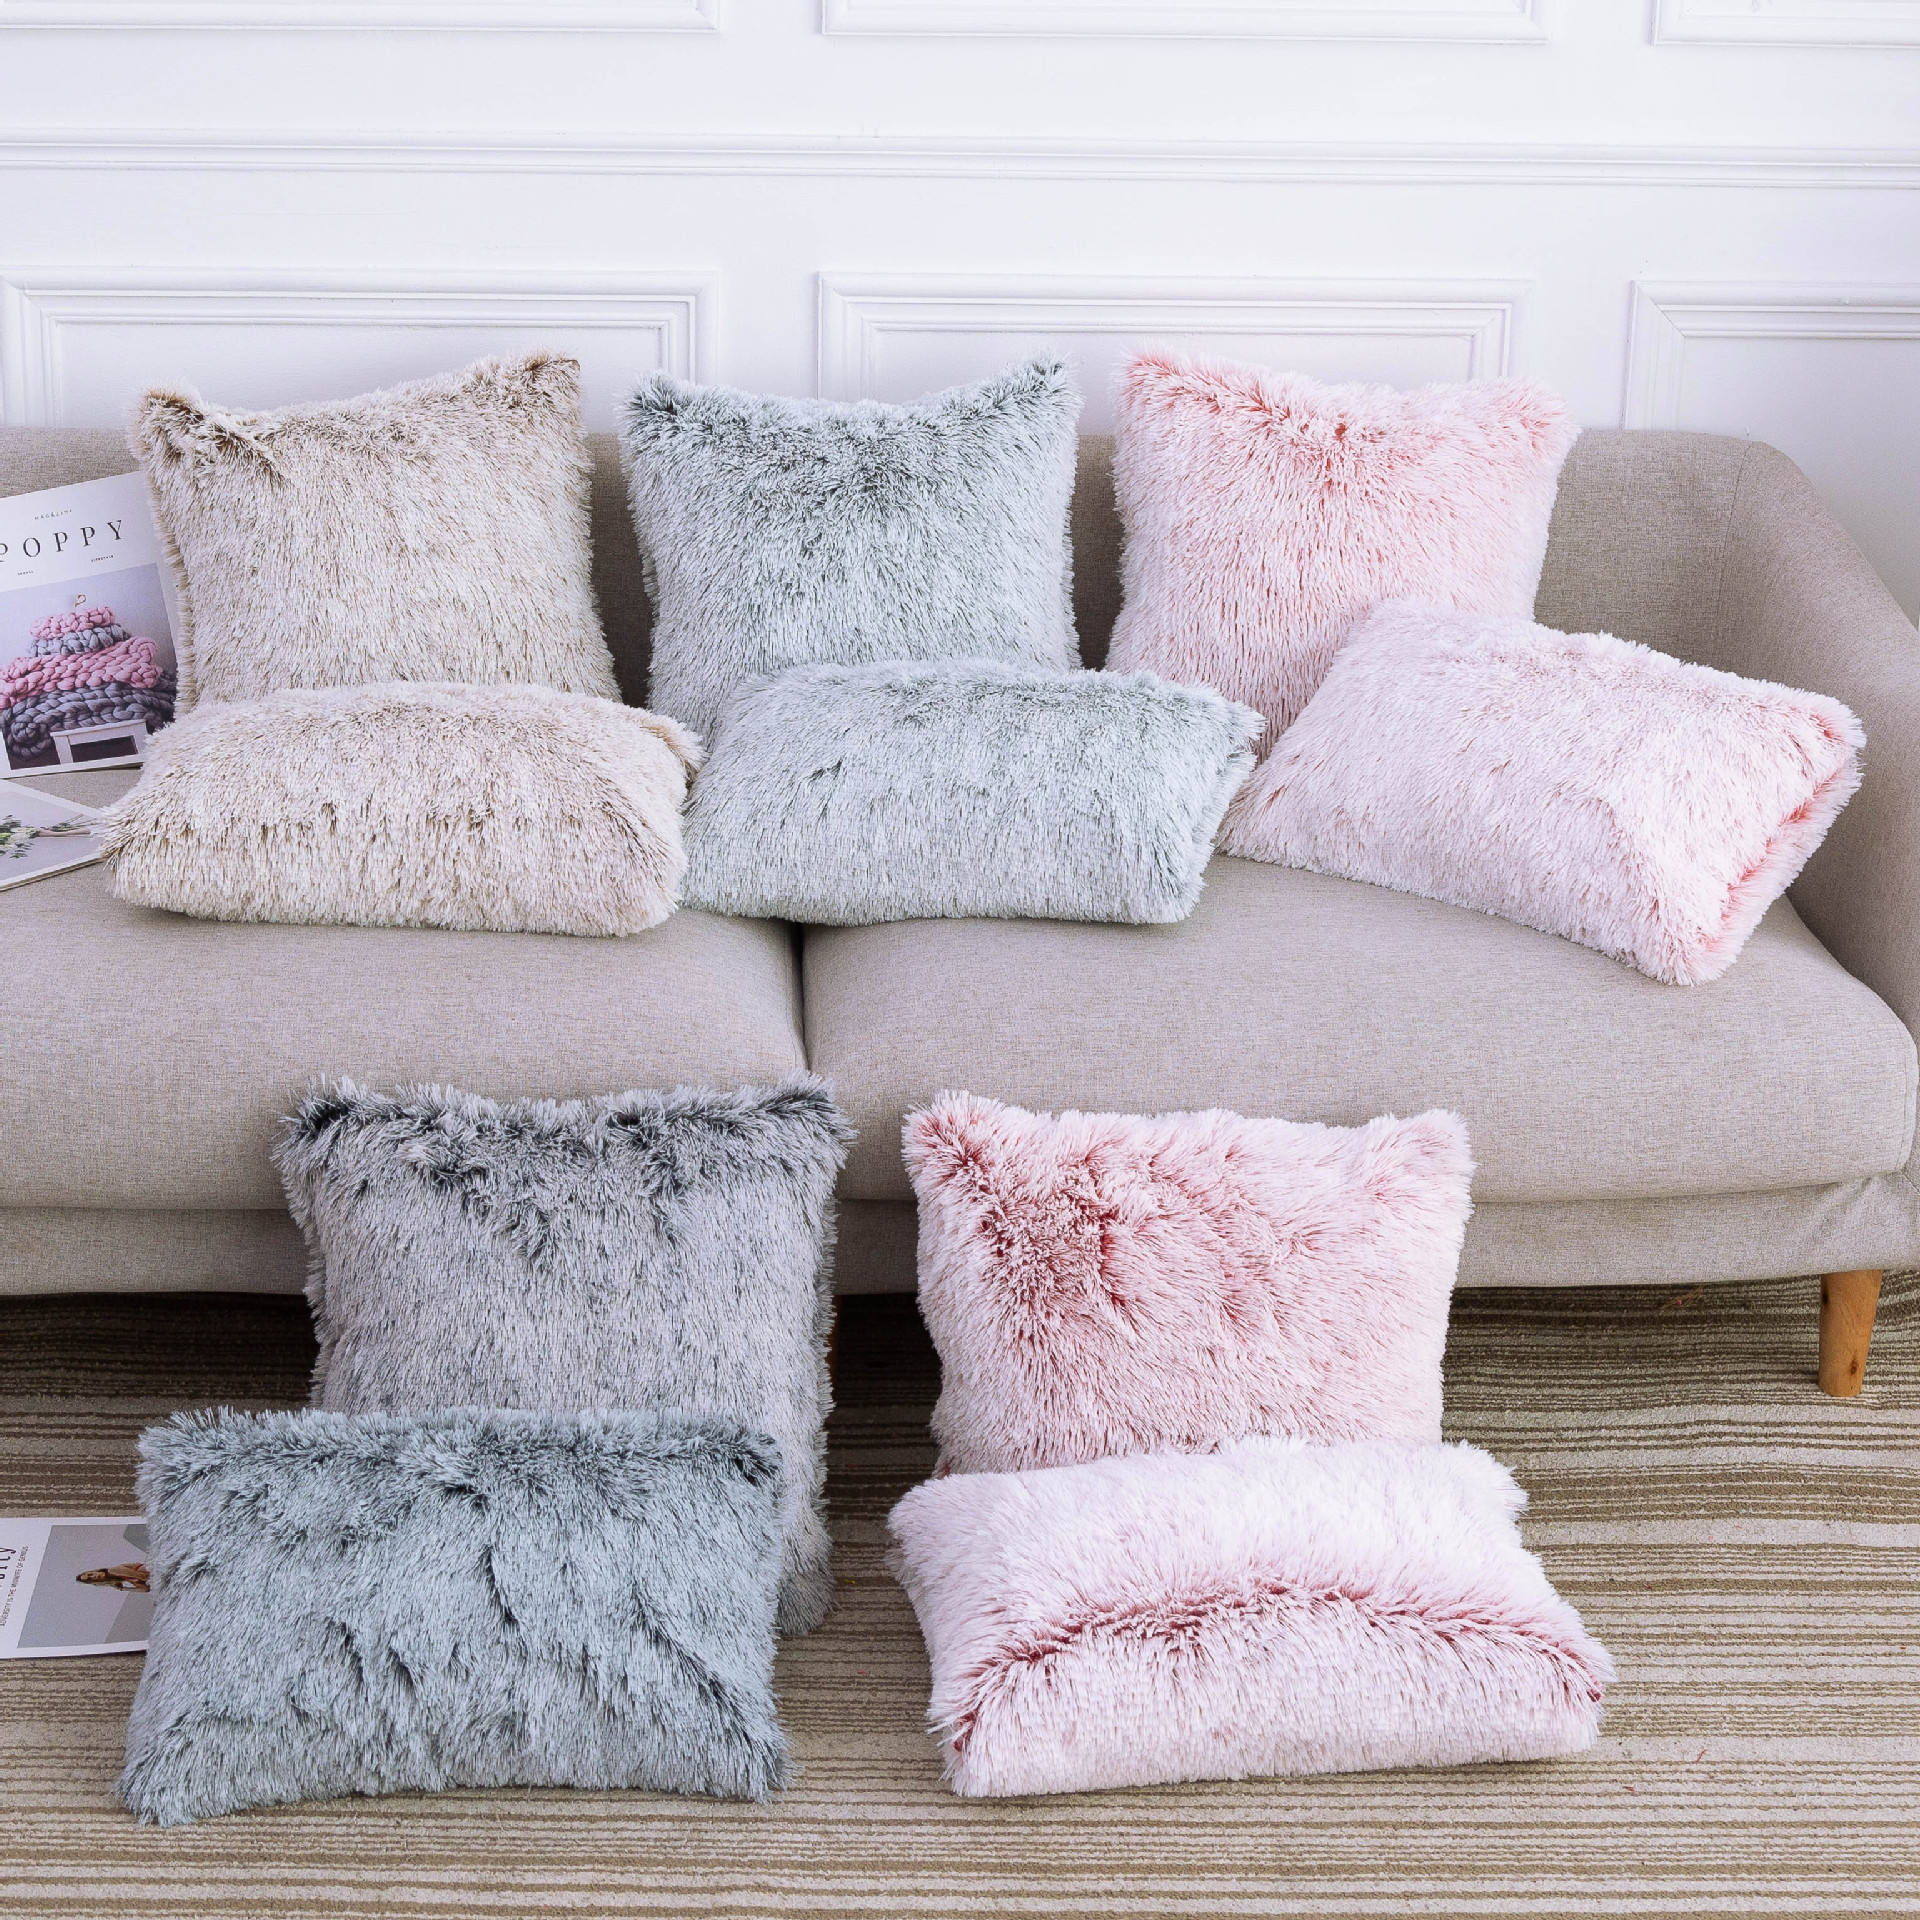 Home Sofa Decorative Faux Fur Pillow Cushion Soft Fluffy Sherpa Wool Pillow Cover